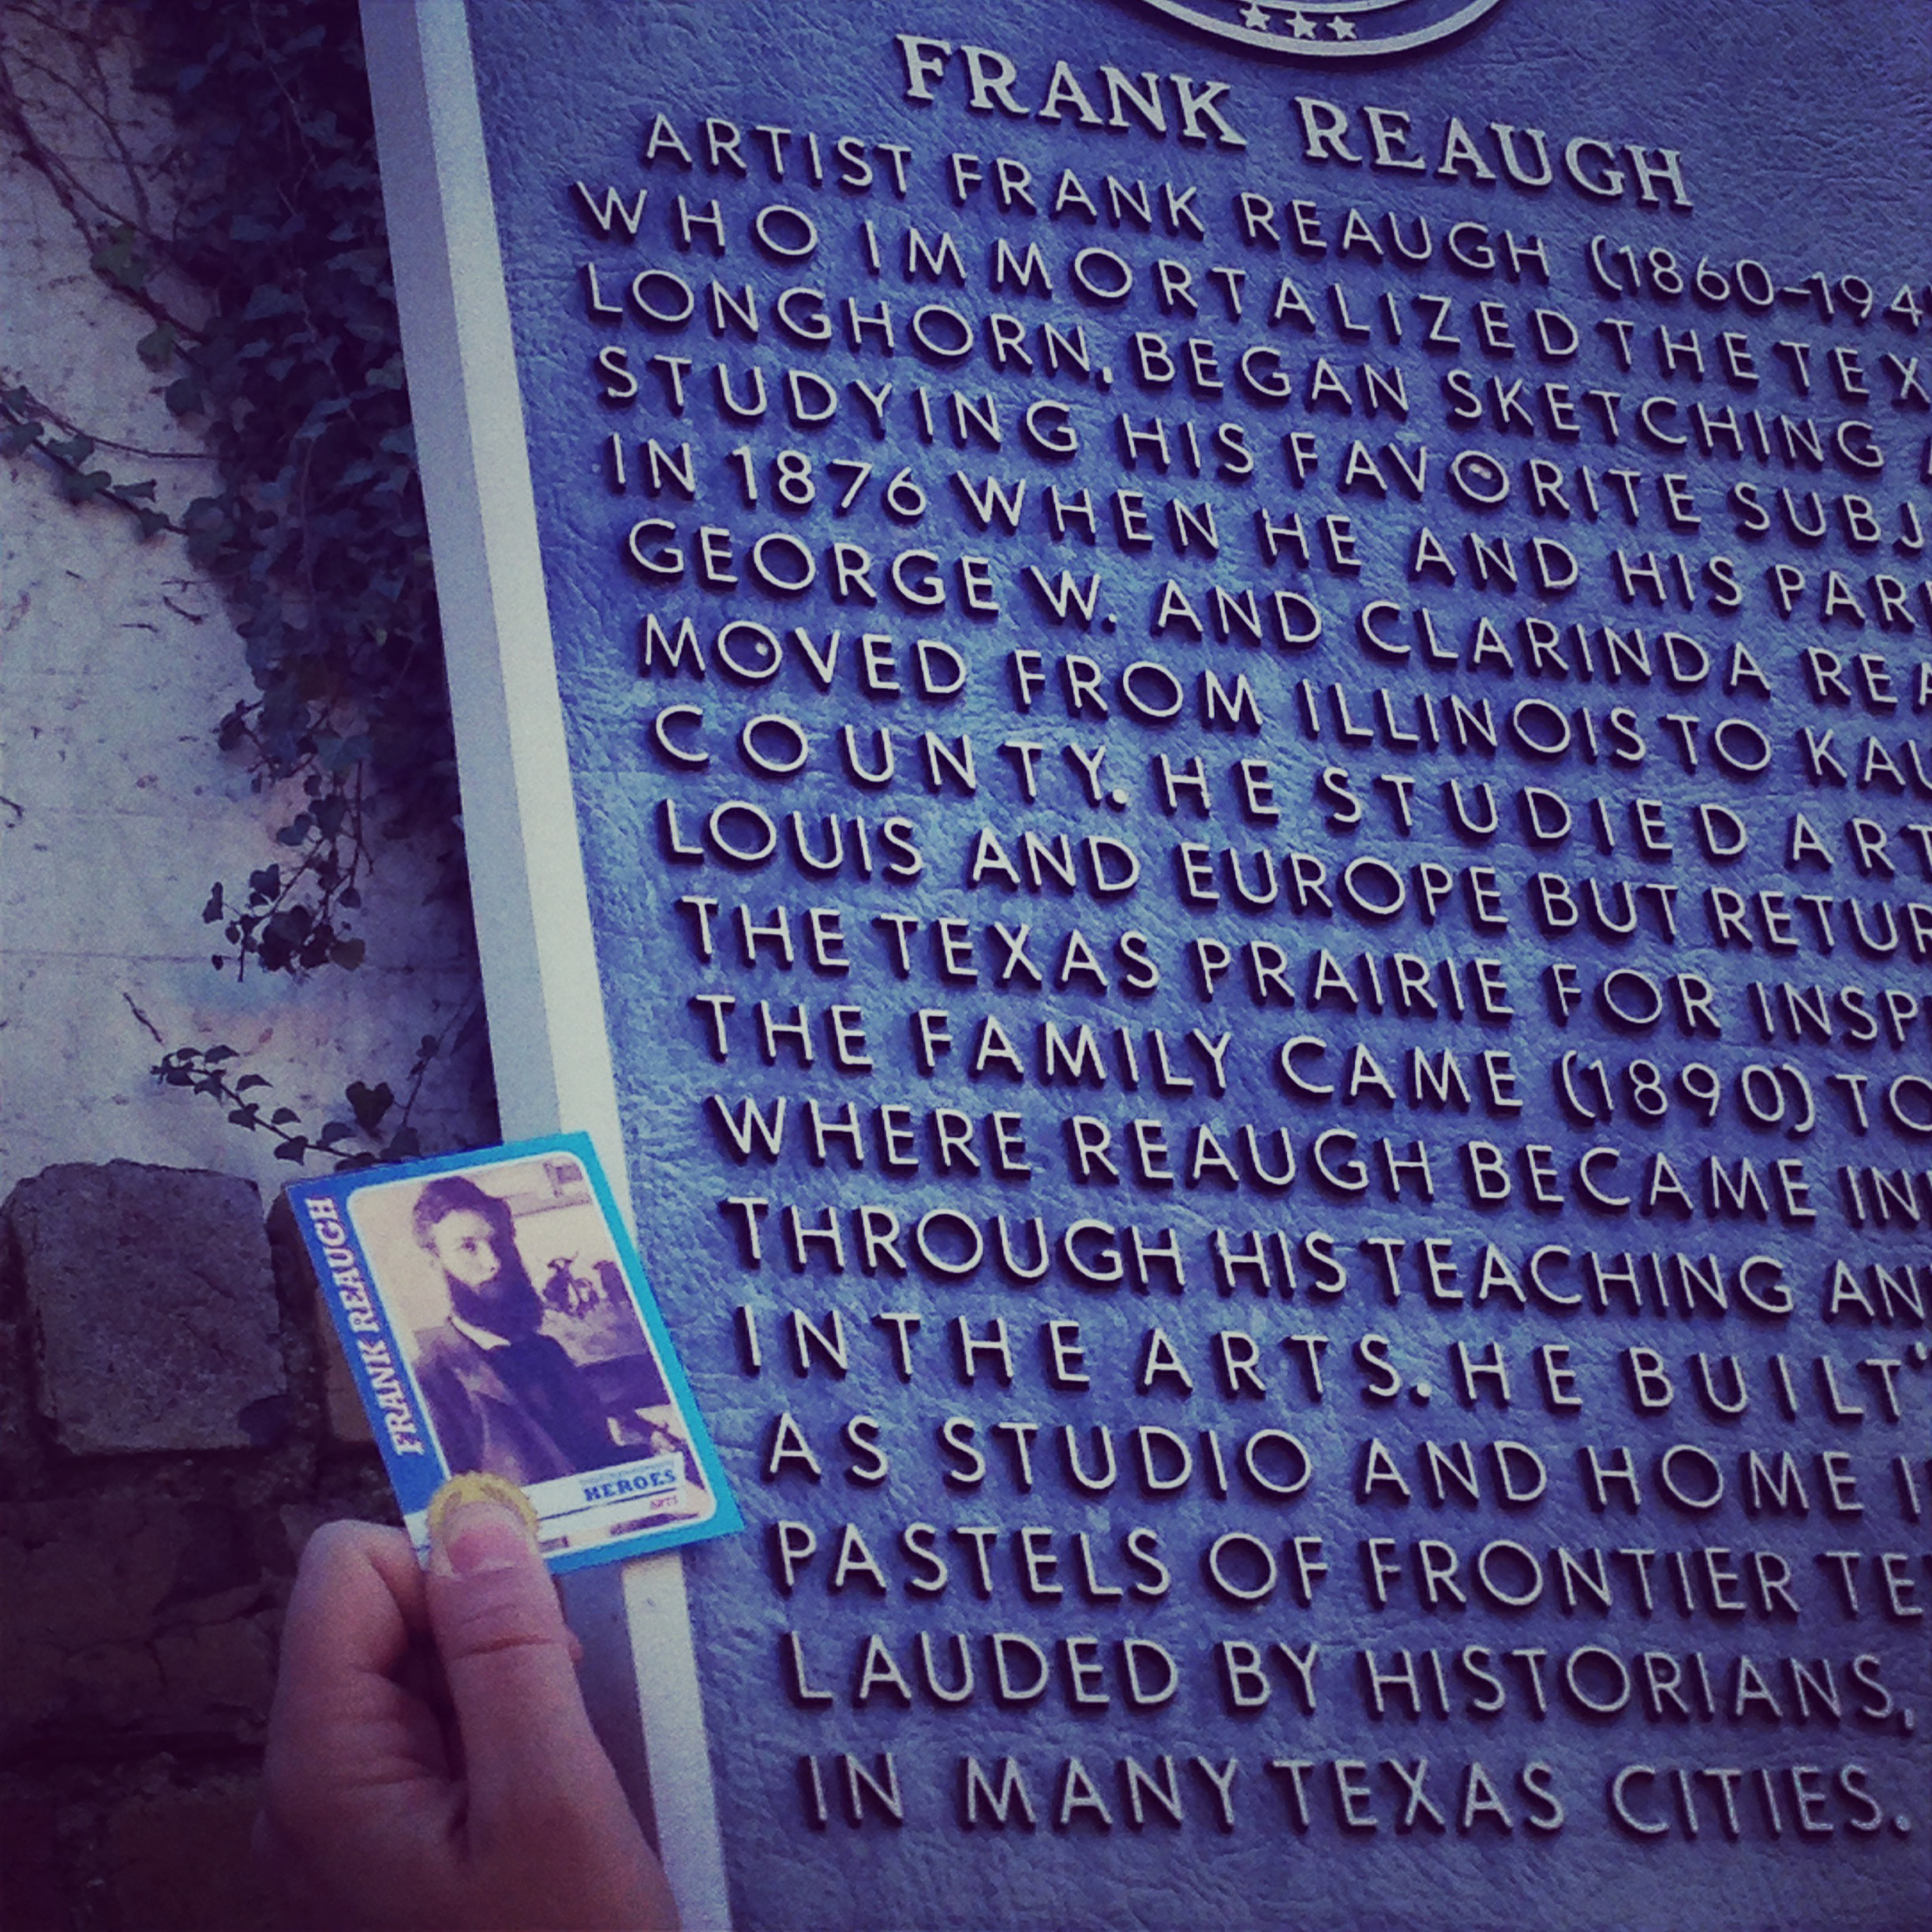 Frank Reaugh's card with Frank Reaugh's plaque.